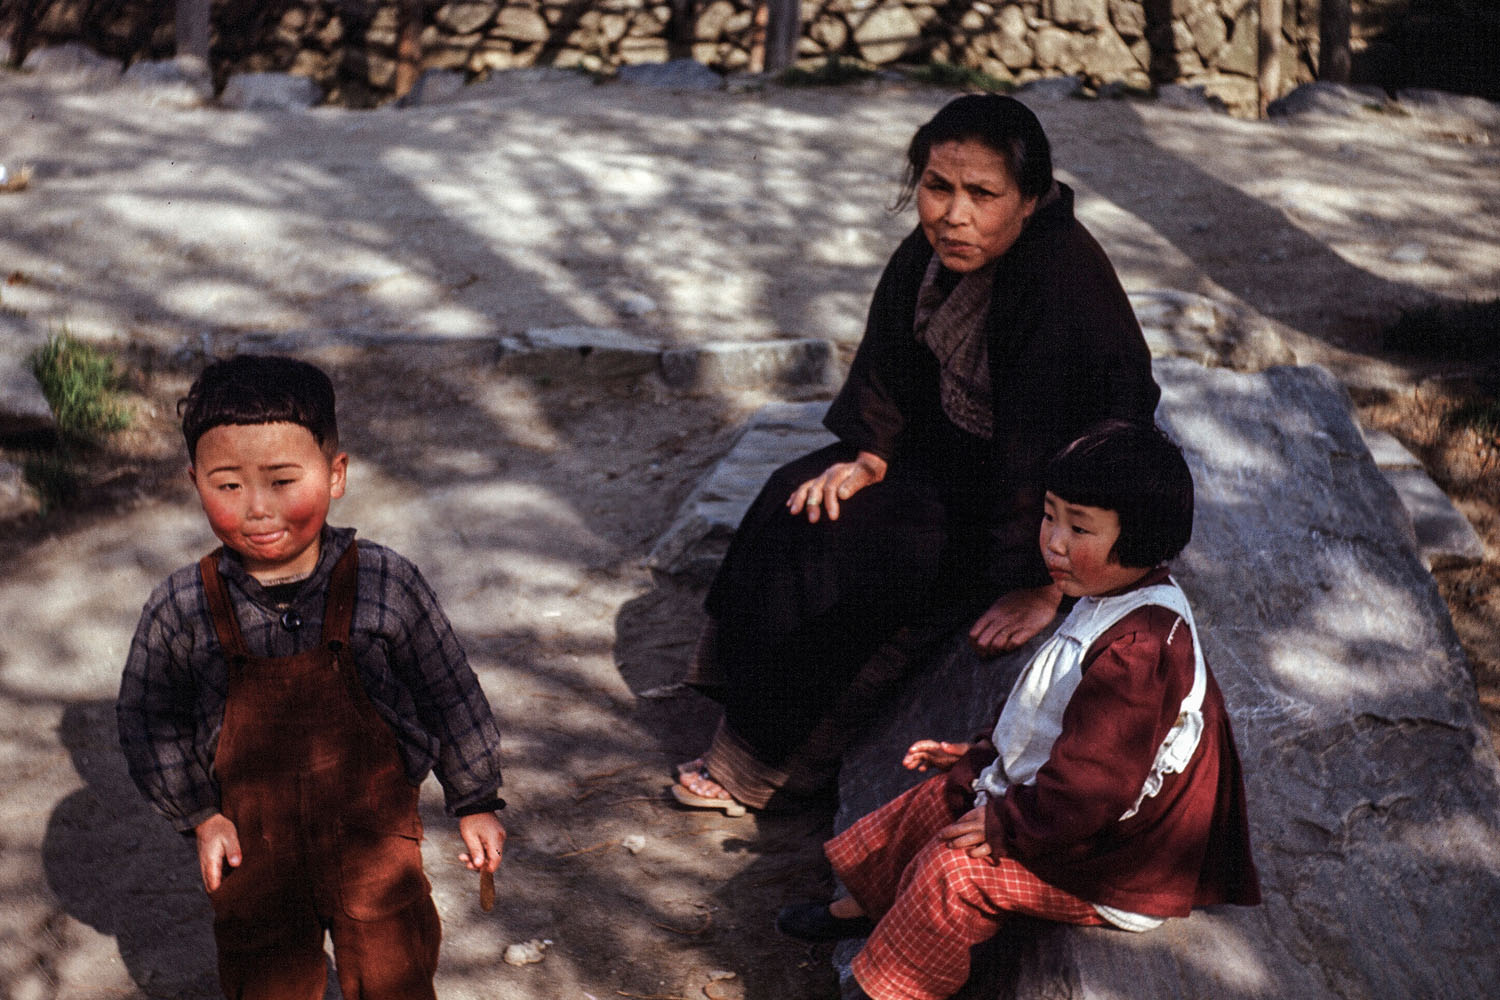 393-Woman with two small Children